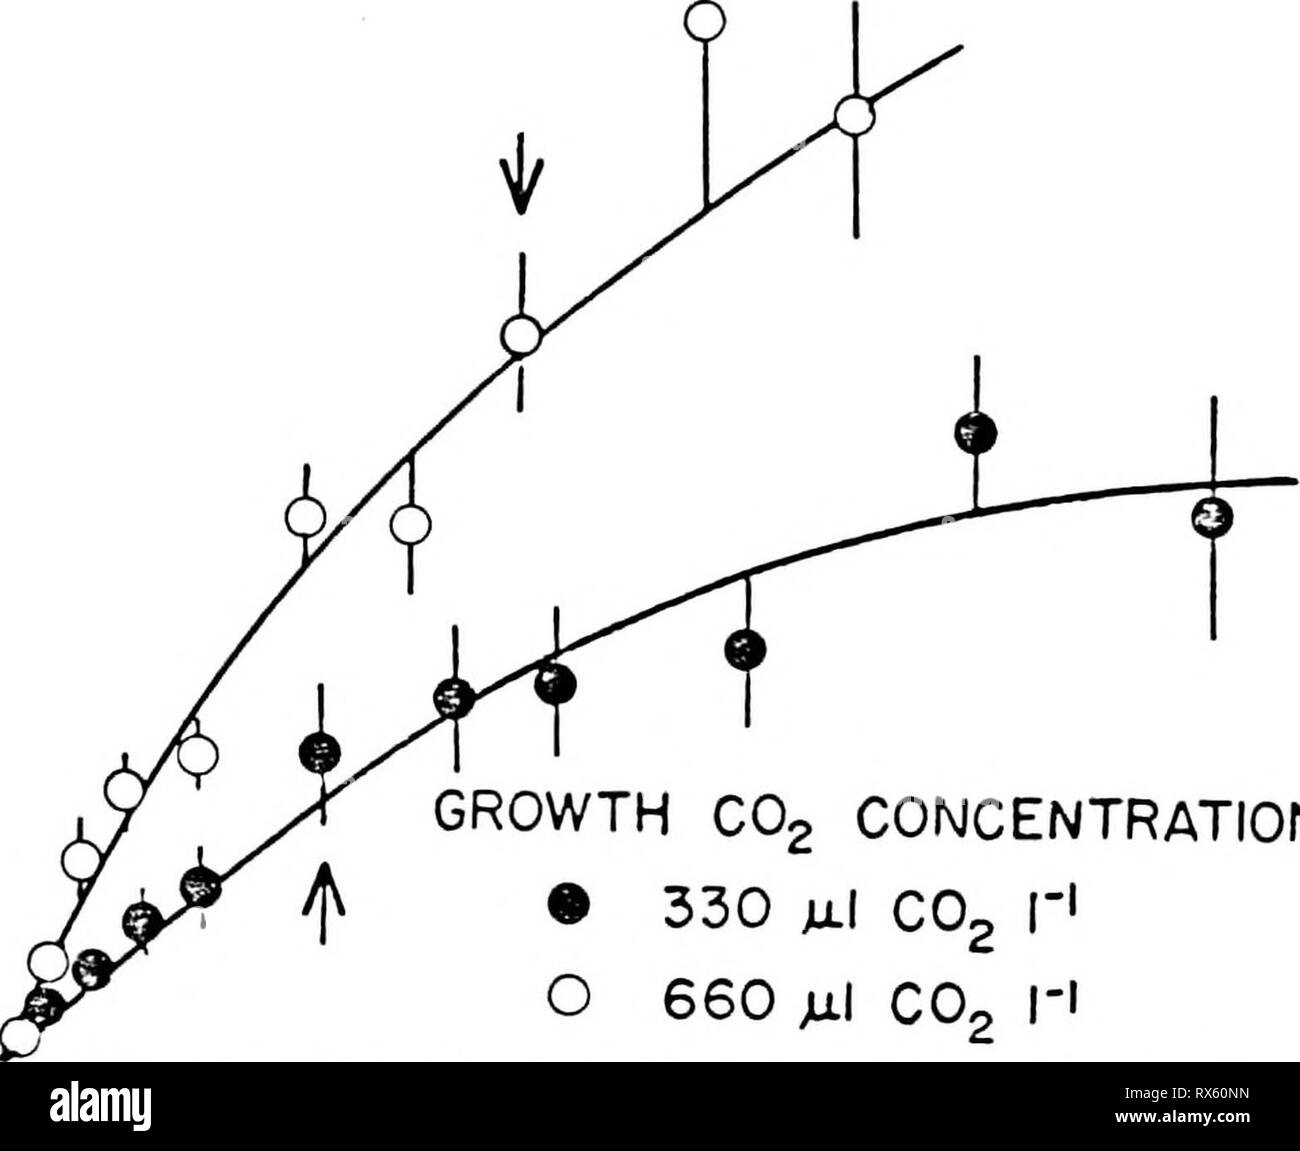 Effects of carbon dioxide on Effects of carbon dioxide on the physiology and biochemistry of photosynthesis in soybean effectsofcarbond00camp Year: 1986  47 co CO UJ X f- -z. CO o - o X Q. L±J Li_ < UJ _l 60- fc 40 H CVJ o CJ '5 | 20 CD E CVJ o CJ 'o E 0   GROWTH C02 CONCENTRATION ® 330 julI co2 r1 660 Ml C02 I'! B - Stock Image